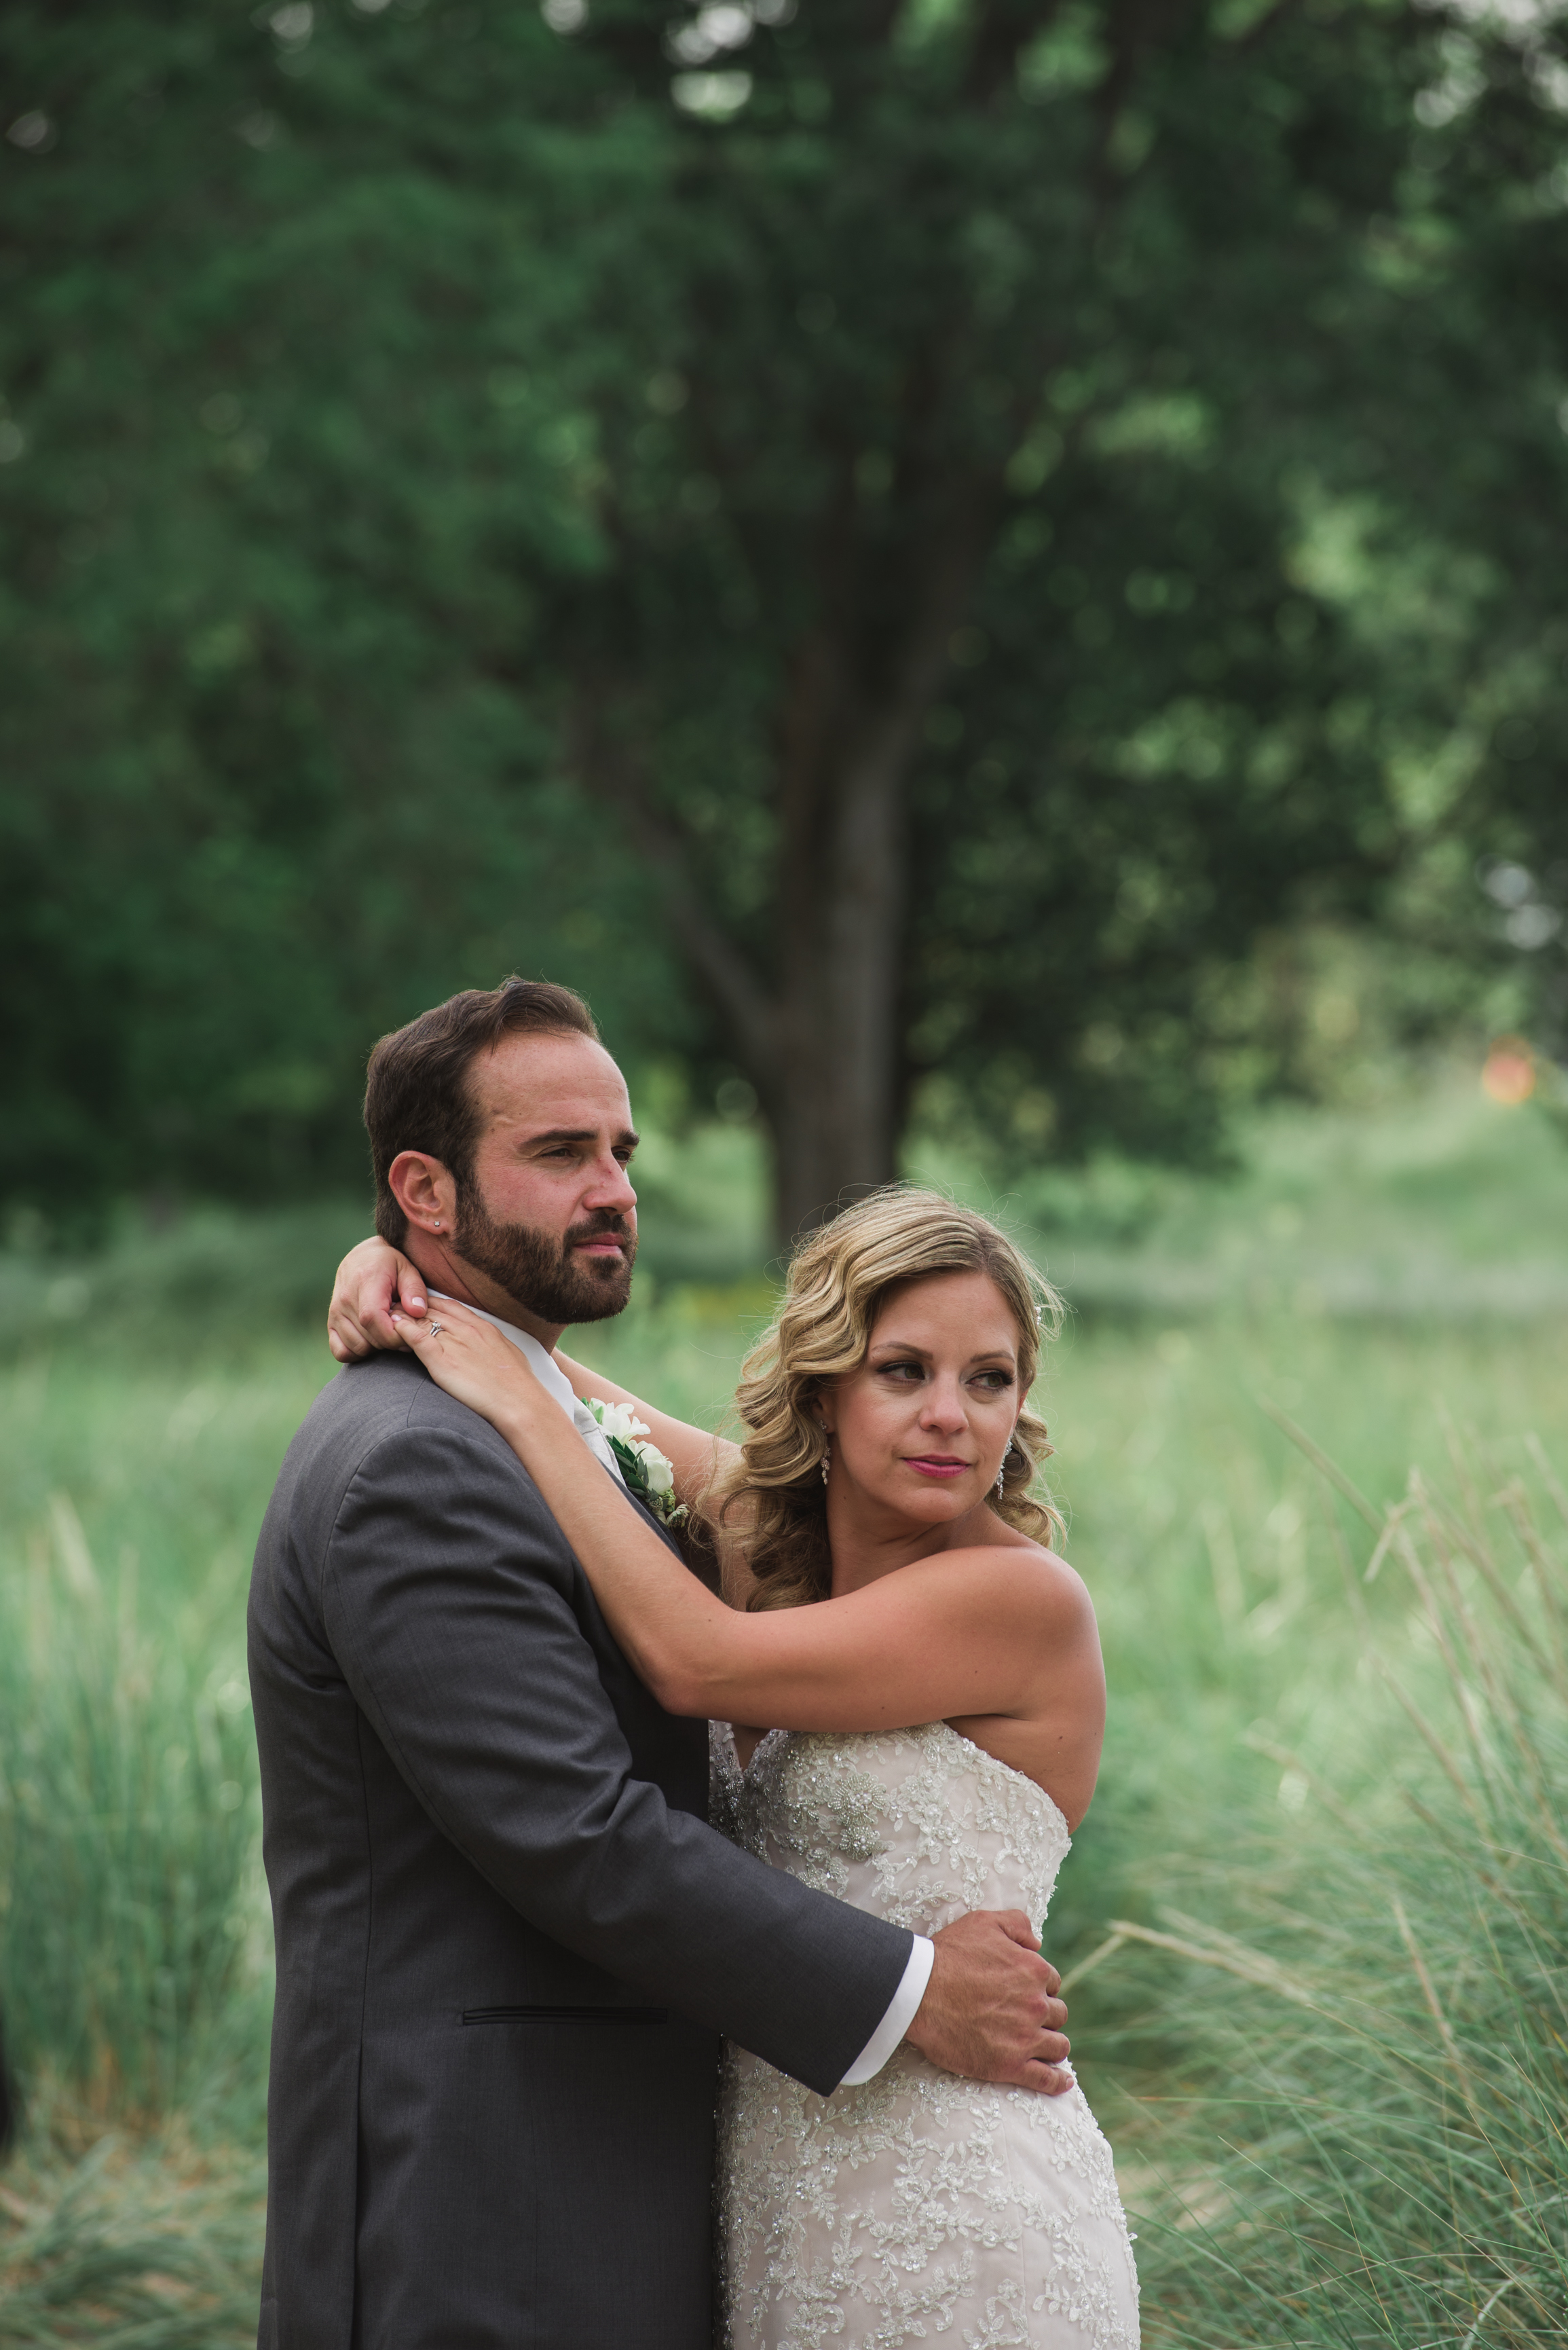 Stunning North Shore Wedding - Mike Staff Photography Chicago